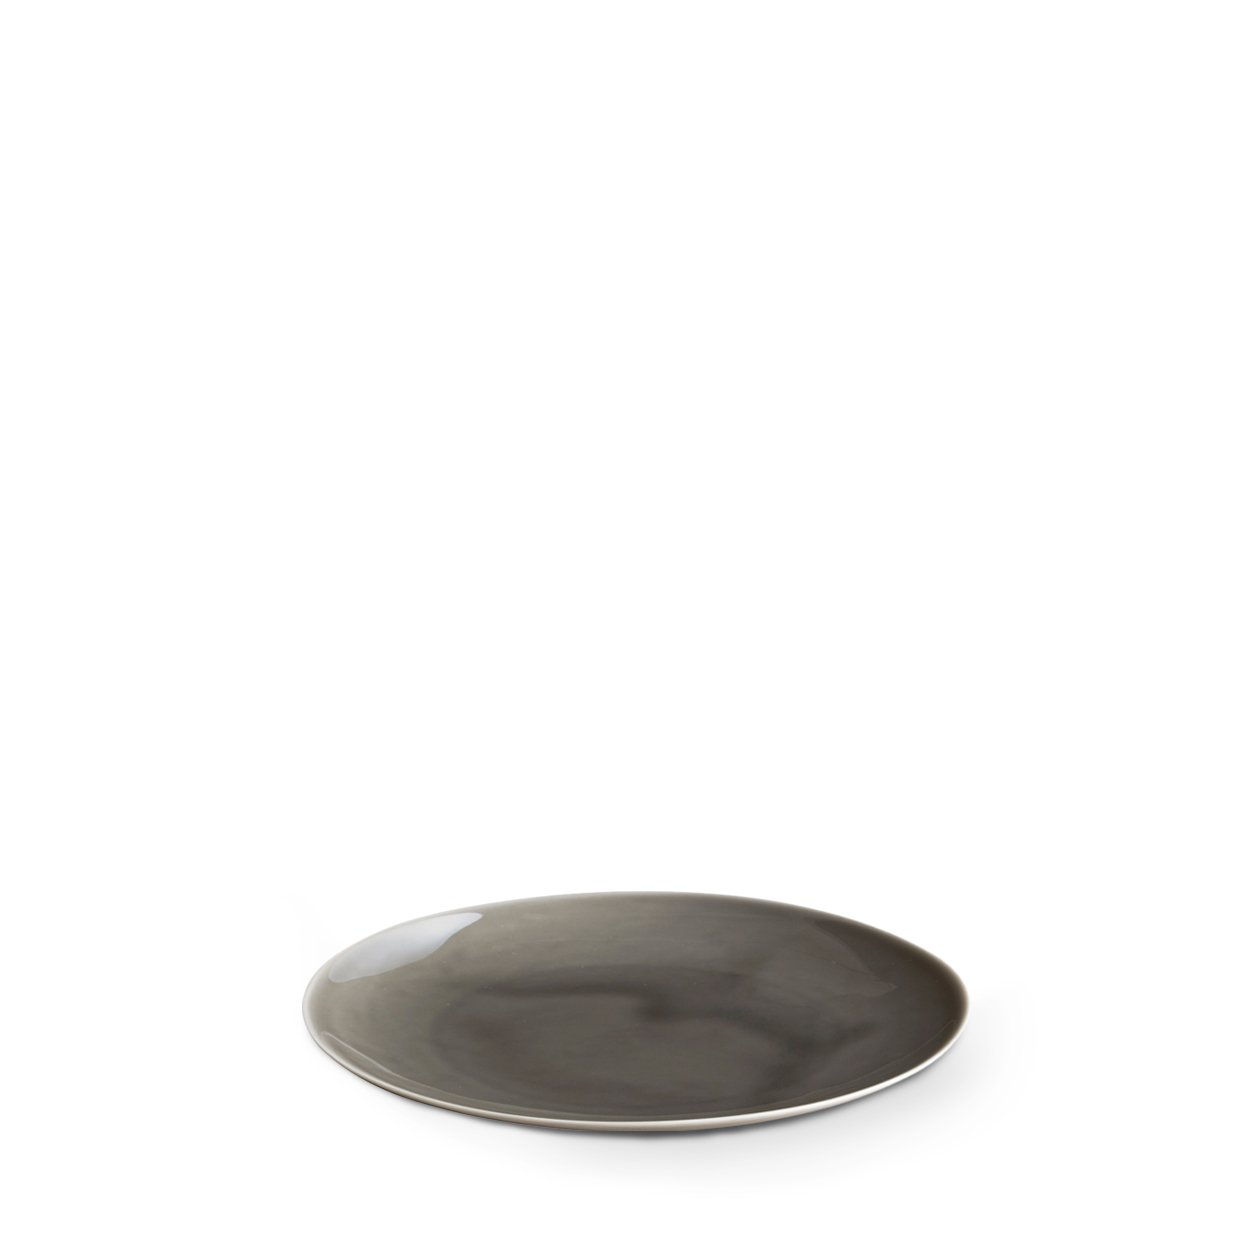 Dune Porcelain Small Plate Grey